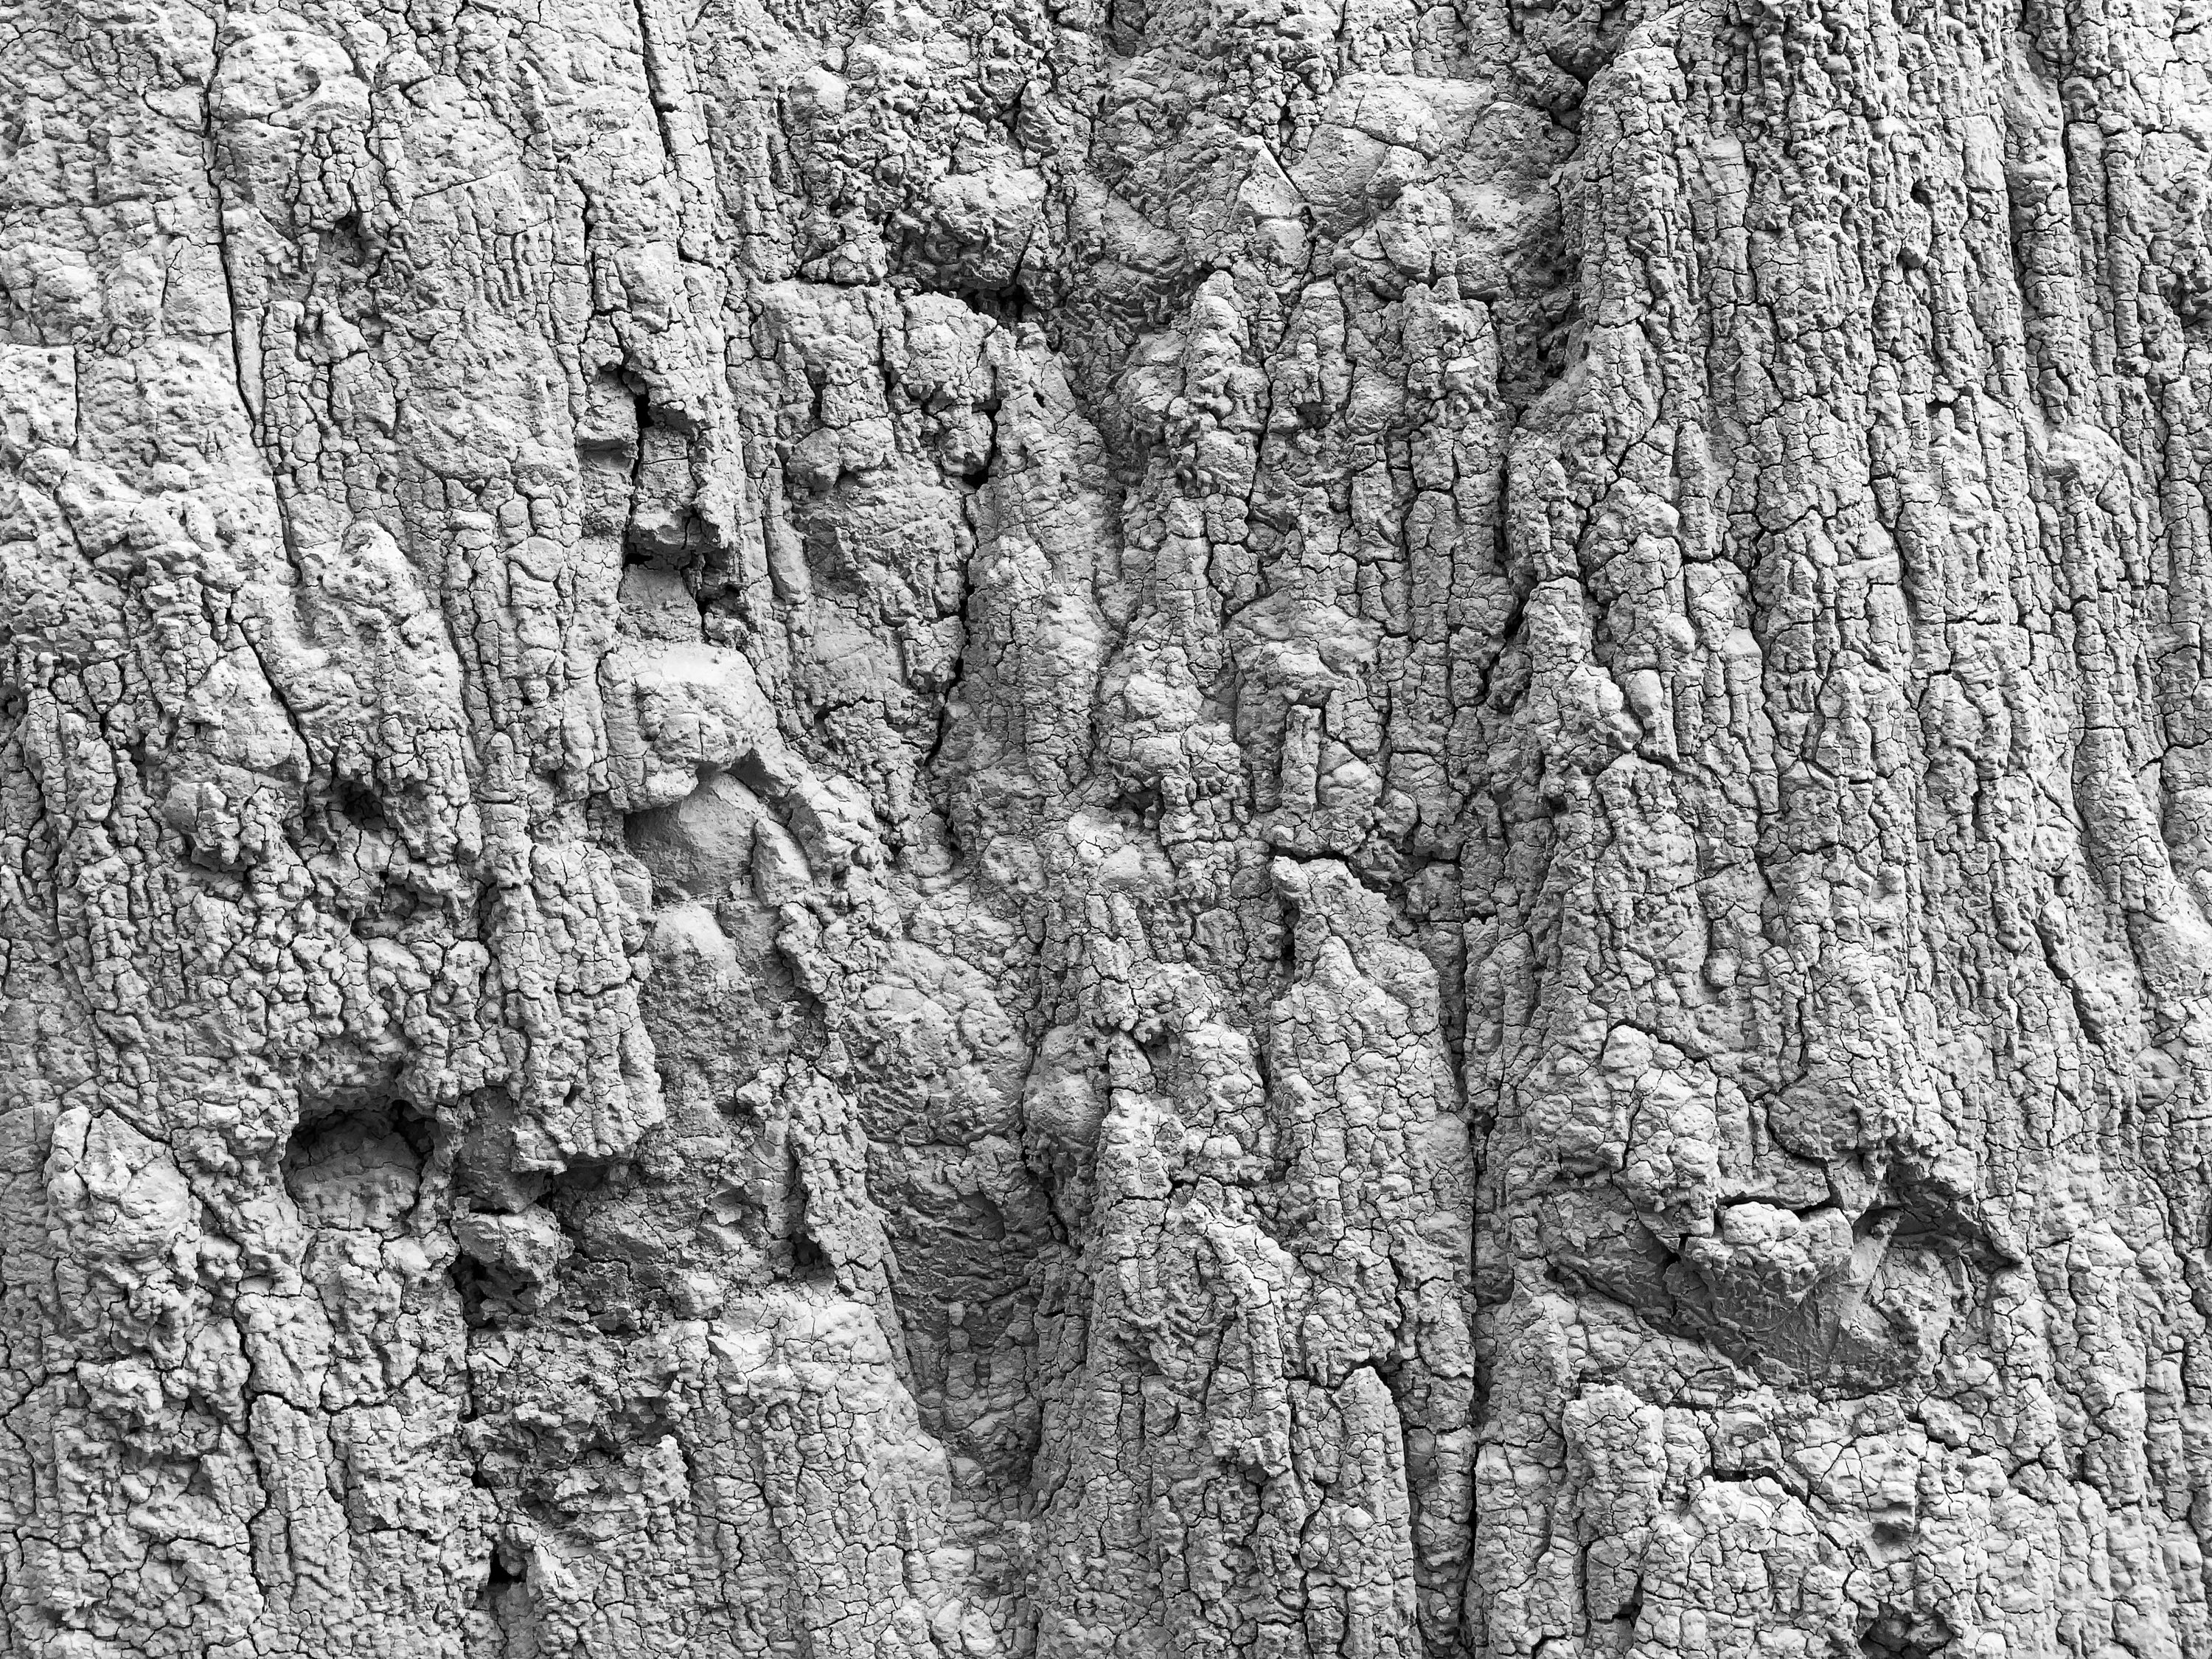 Texture of the Siltstone